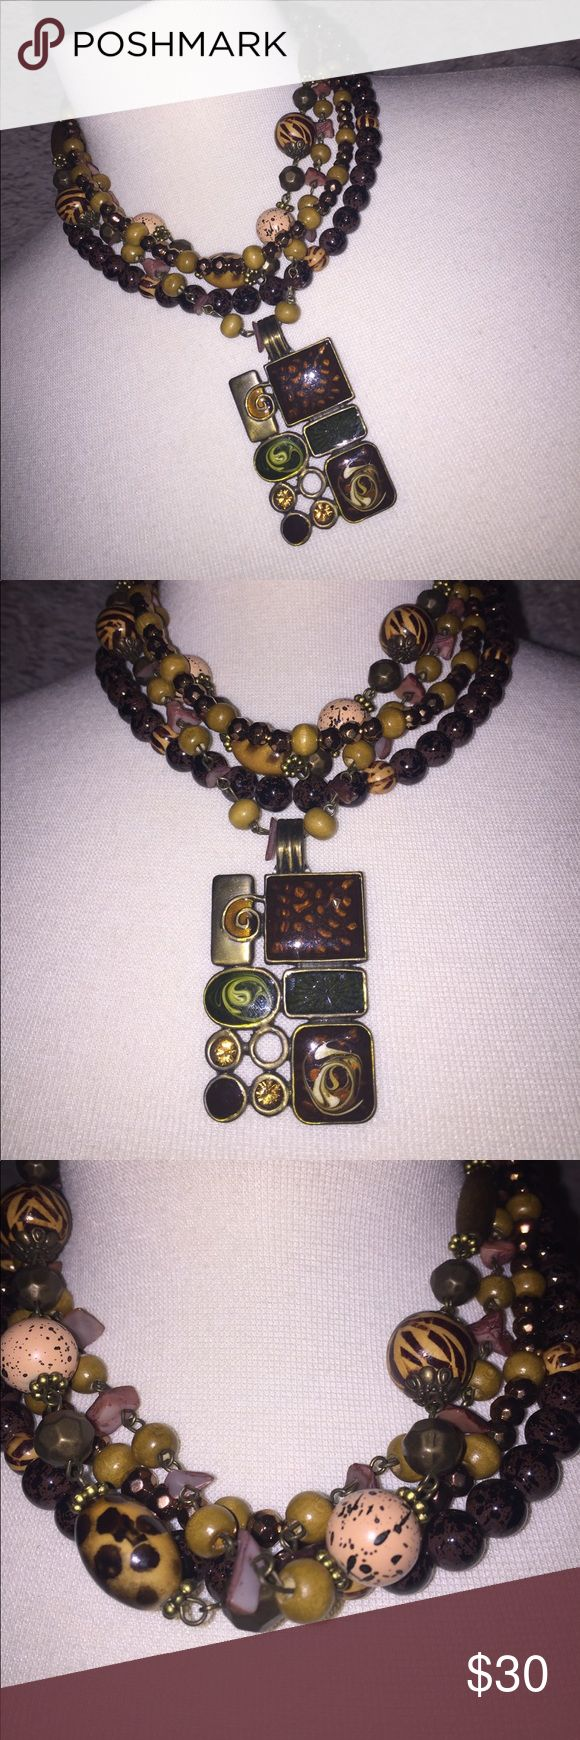 Premier Designs Necklace AND Detachable Pendant This multi-strand necklace is gorgeous in green, browns and animal print beads. Looks great alone or with the pendant (included) which has magnetic detaching clasp so can easily be worn with other necklaces. Premier Designs Jewelry